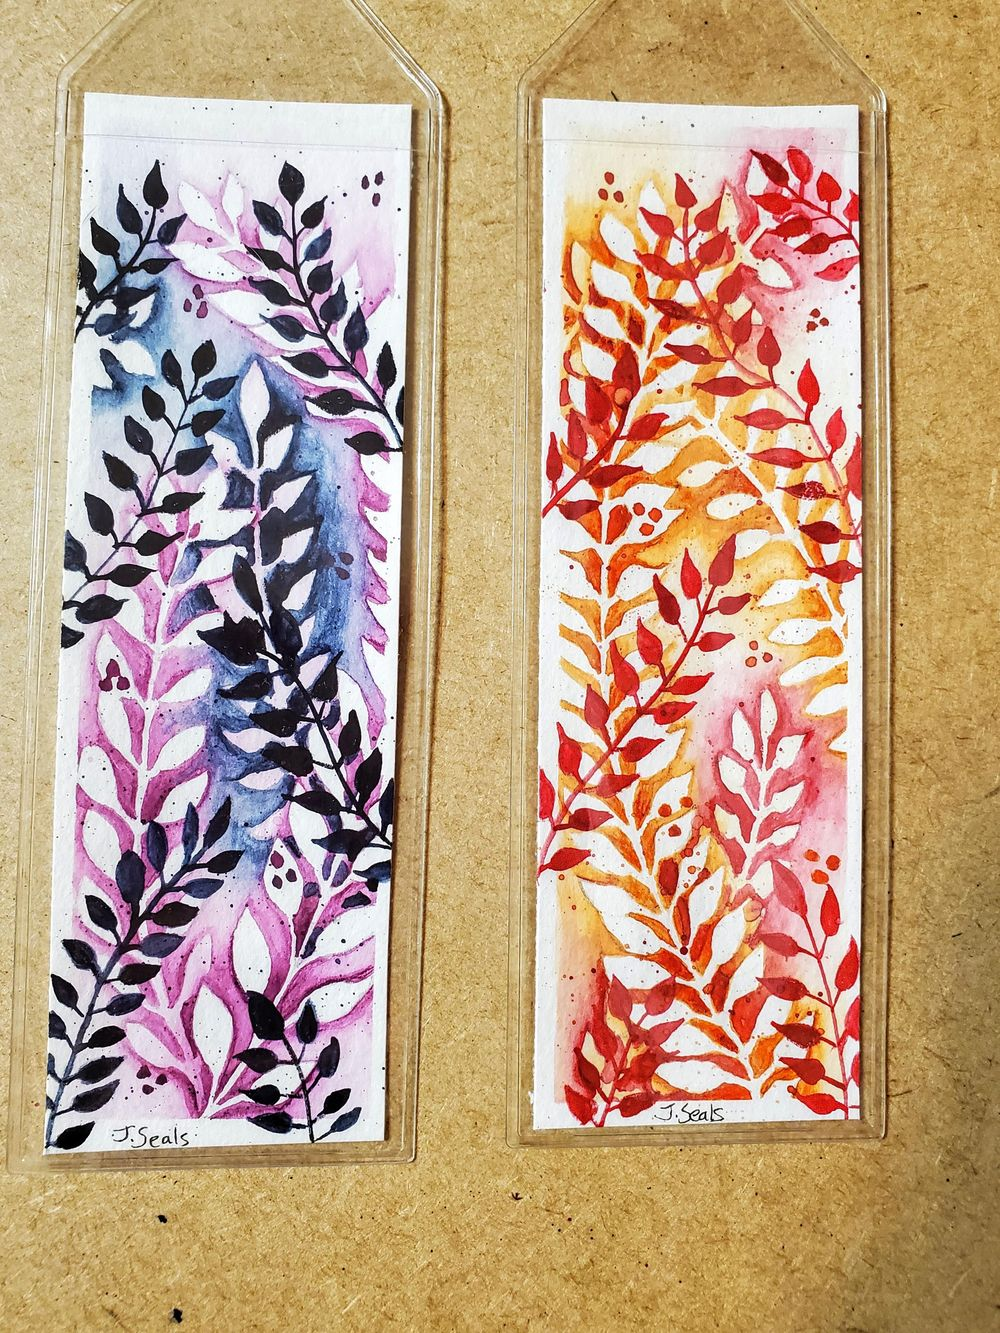 Bookmarks the negative way! - image 1 - student project